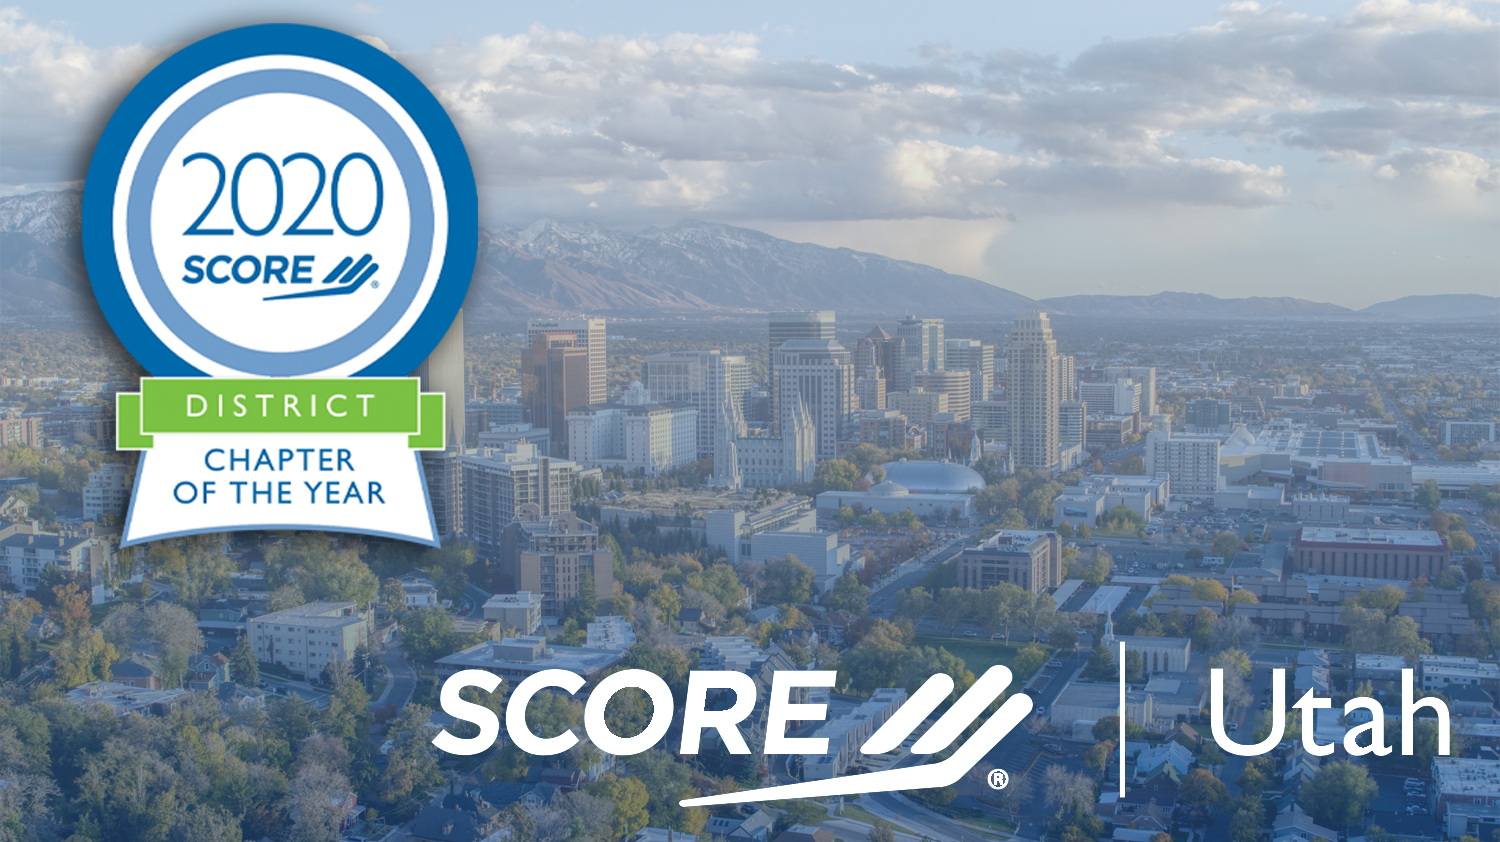 SCORE Utah District Chapter of the Year 2020